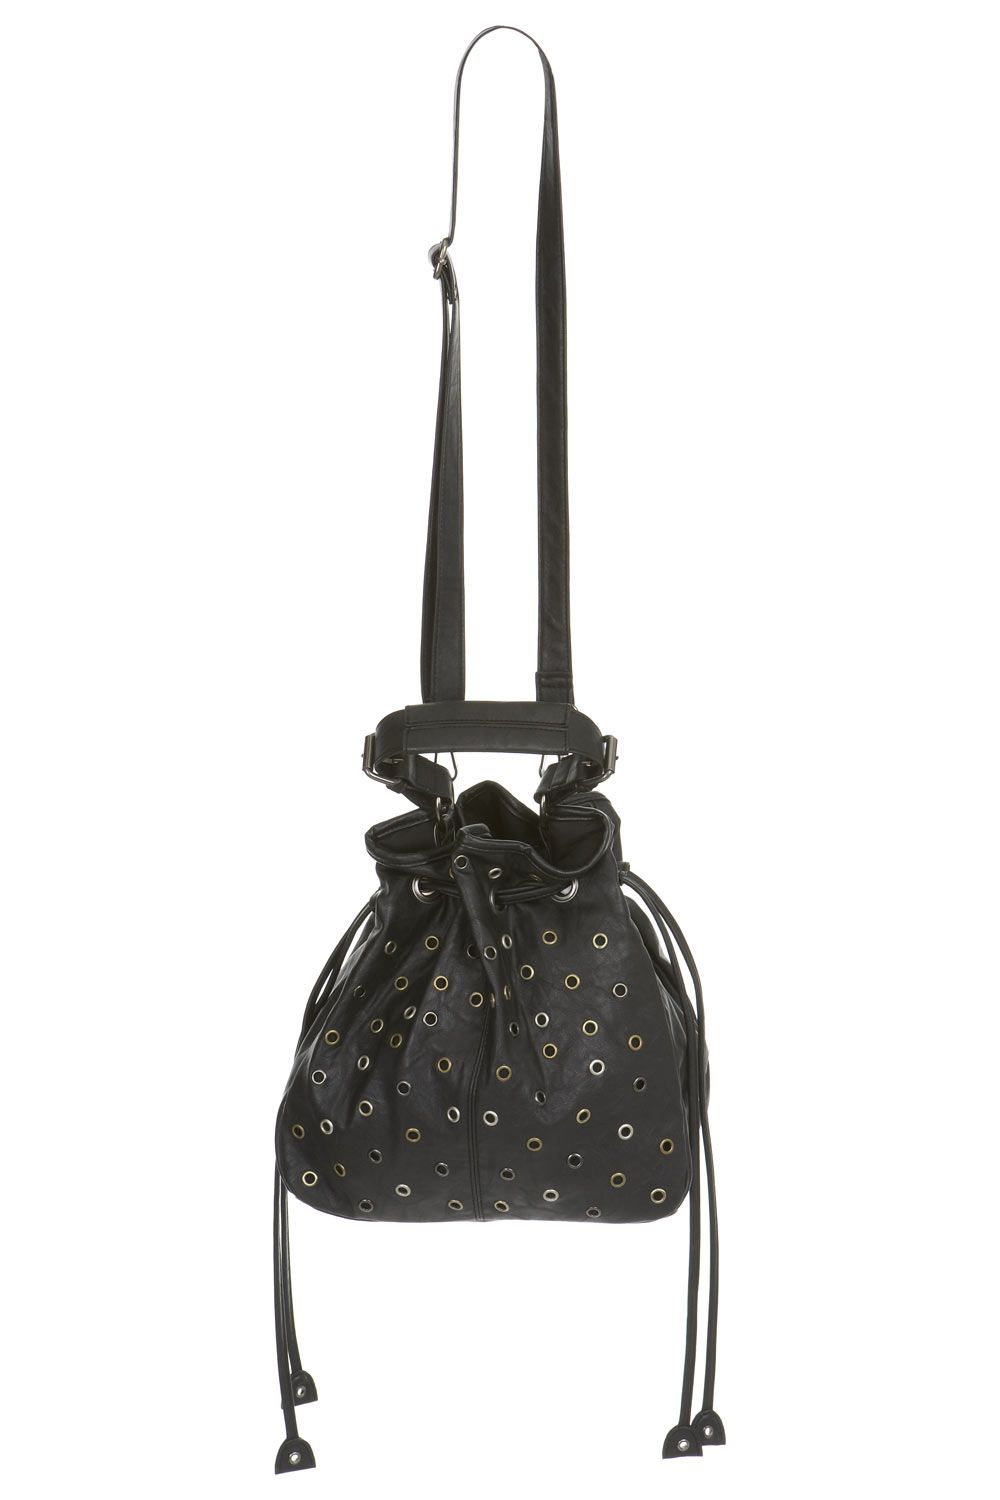 Warehouse Eyelet drawstring bag product image